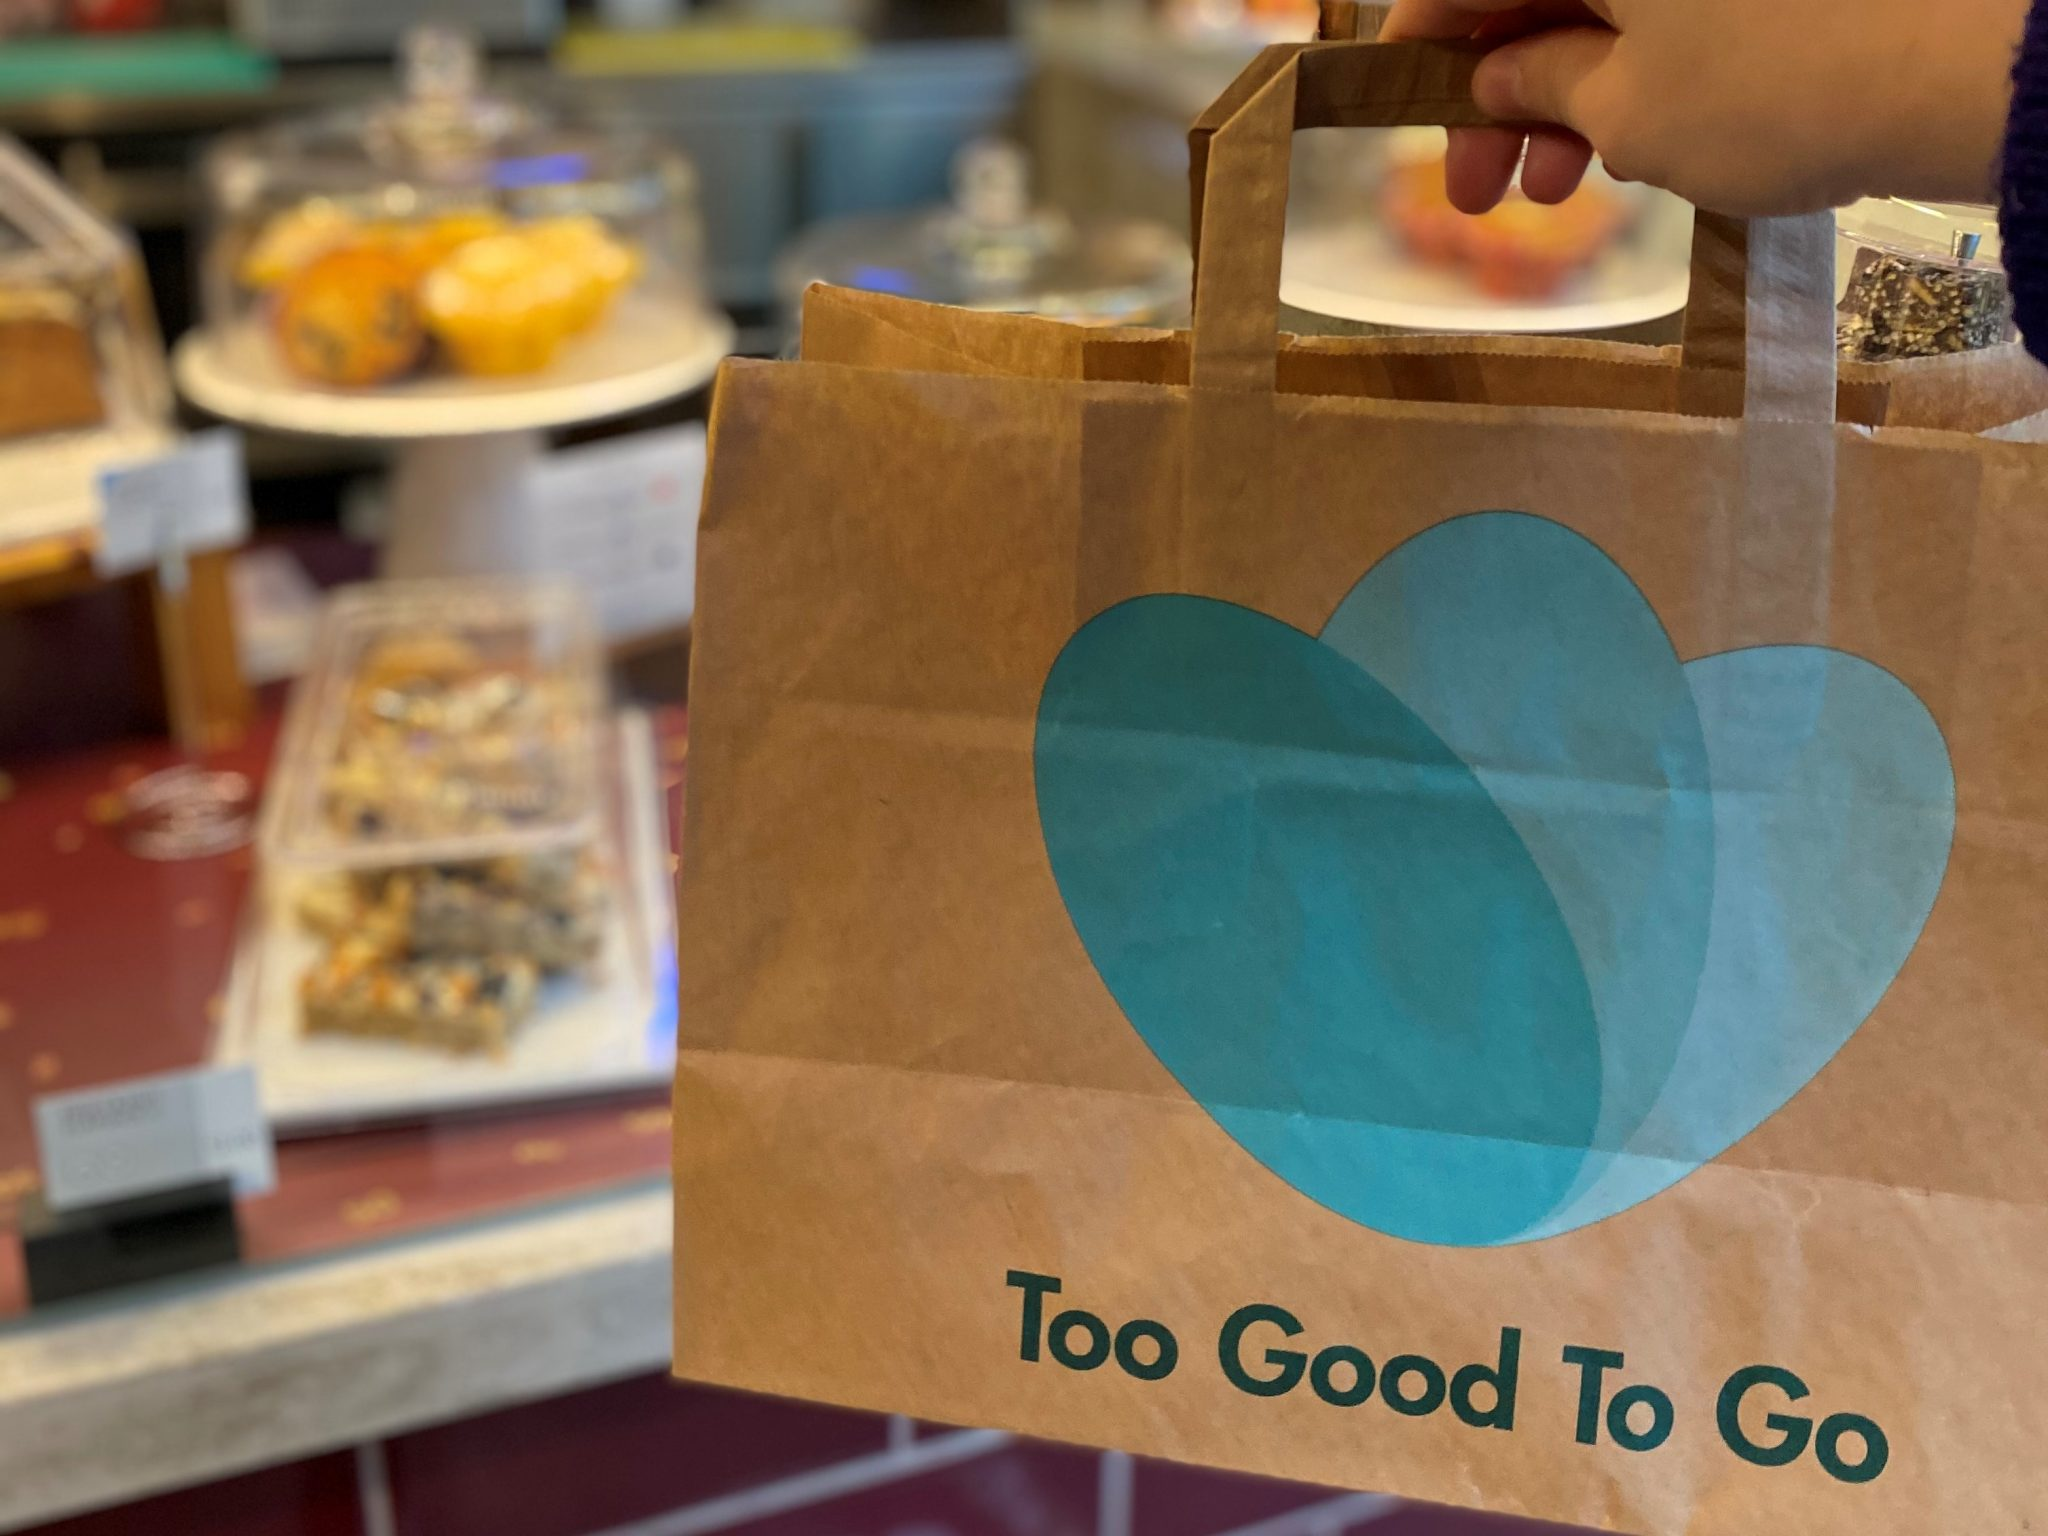 Costa Coffee is putting more plans in place to tackle food waste